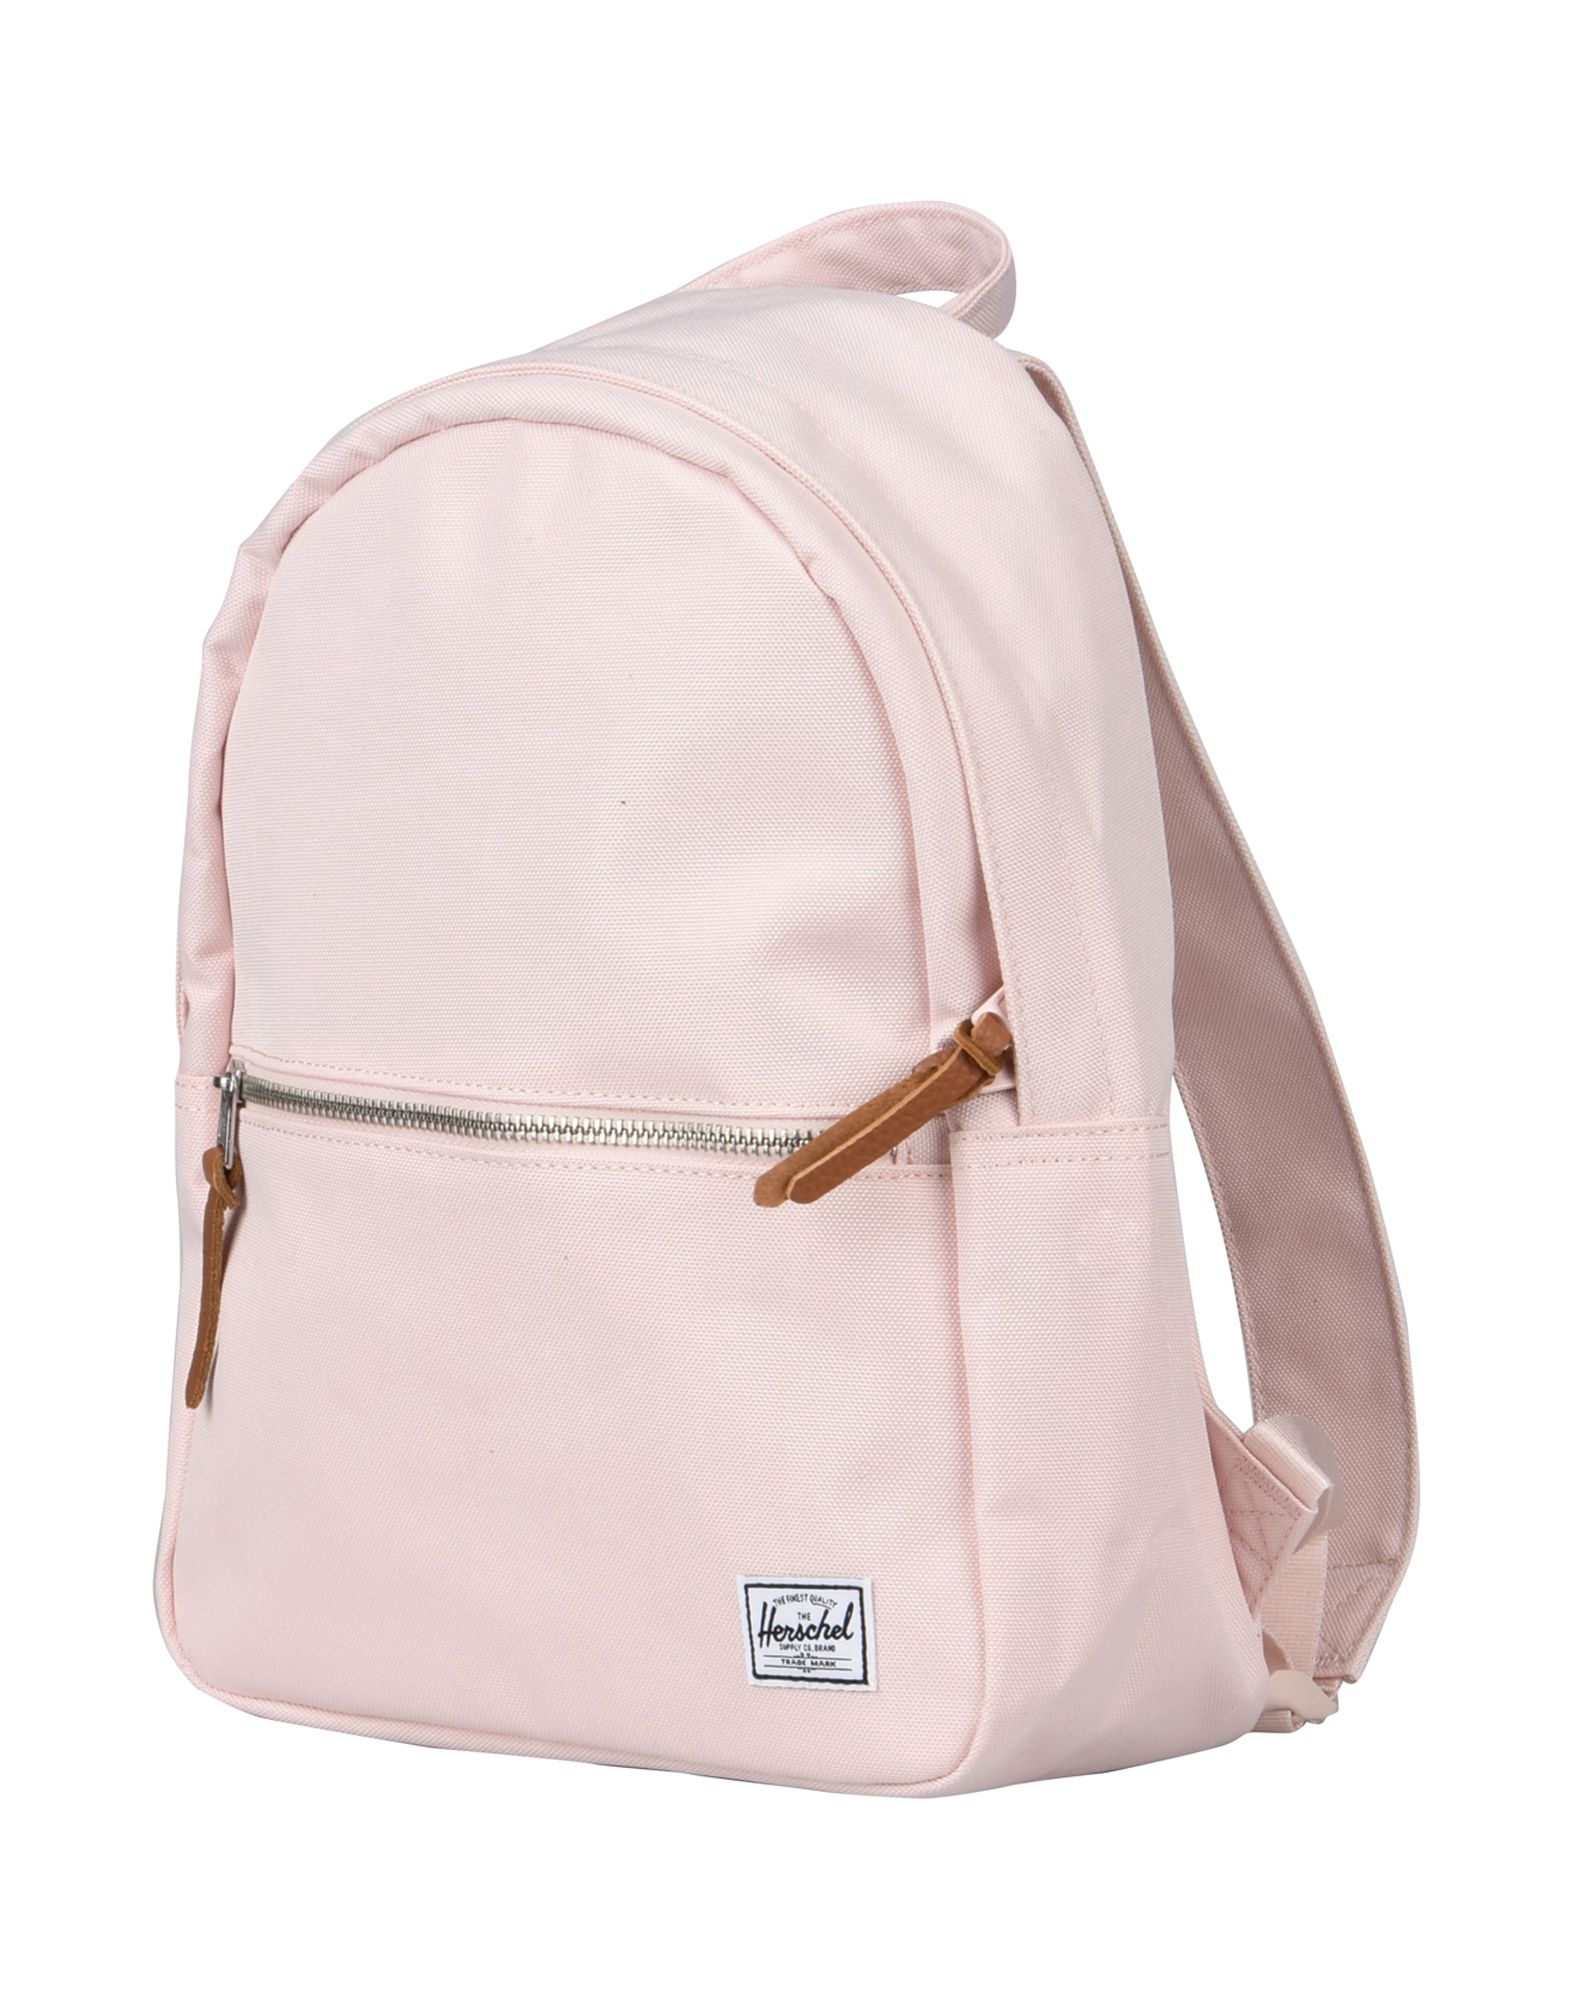 TOWN WO S MONTAUK BACKPACK - BAGS - Backpacks & Bum bags Herschel DqKEnc9hep